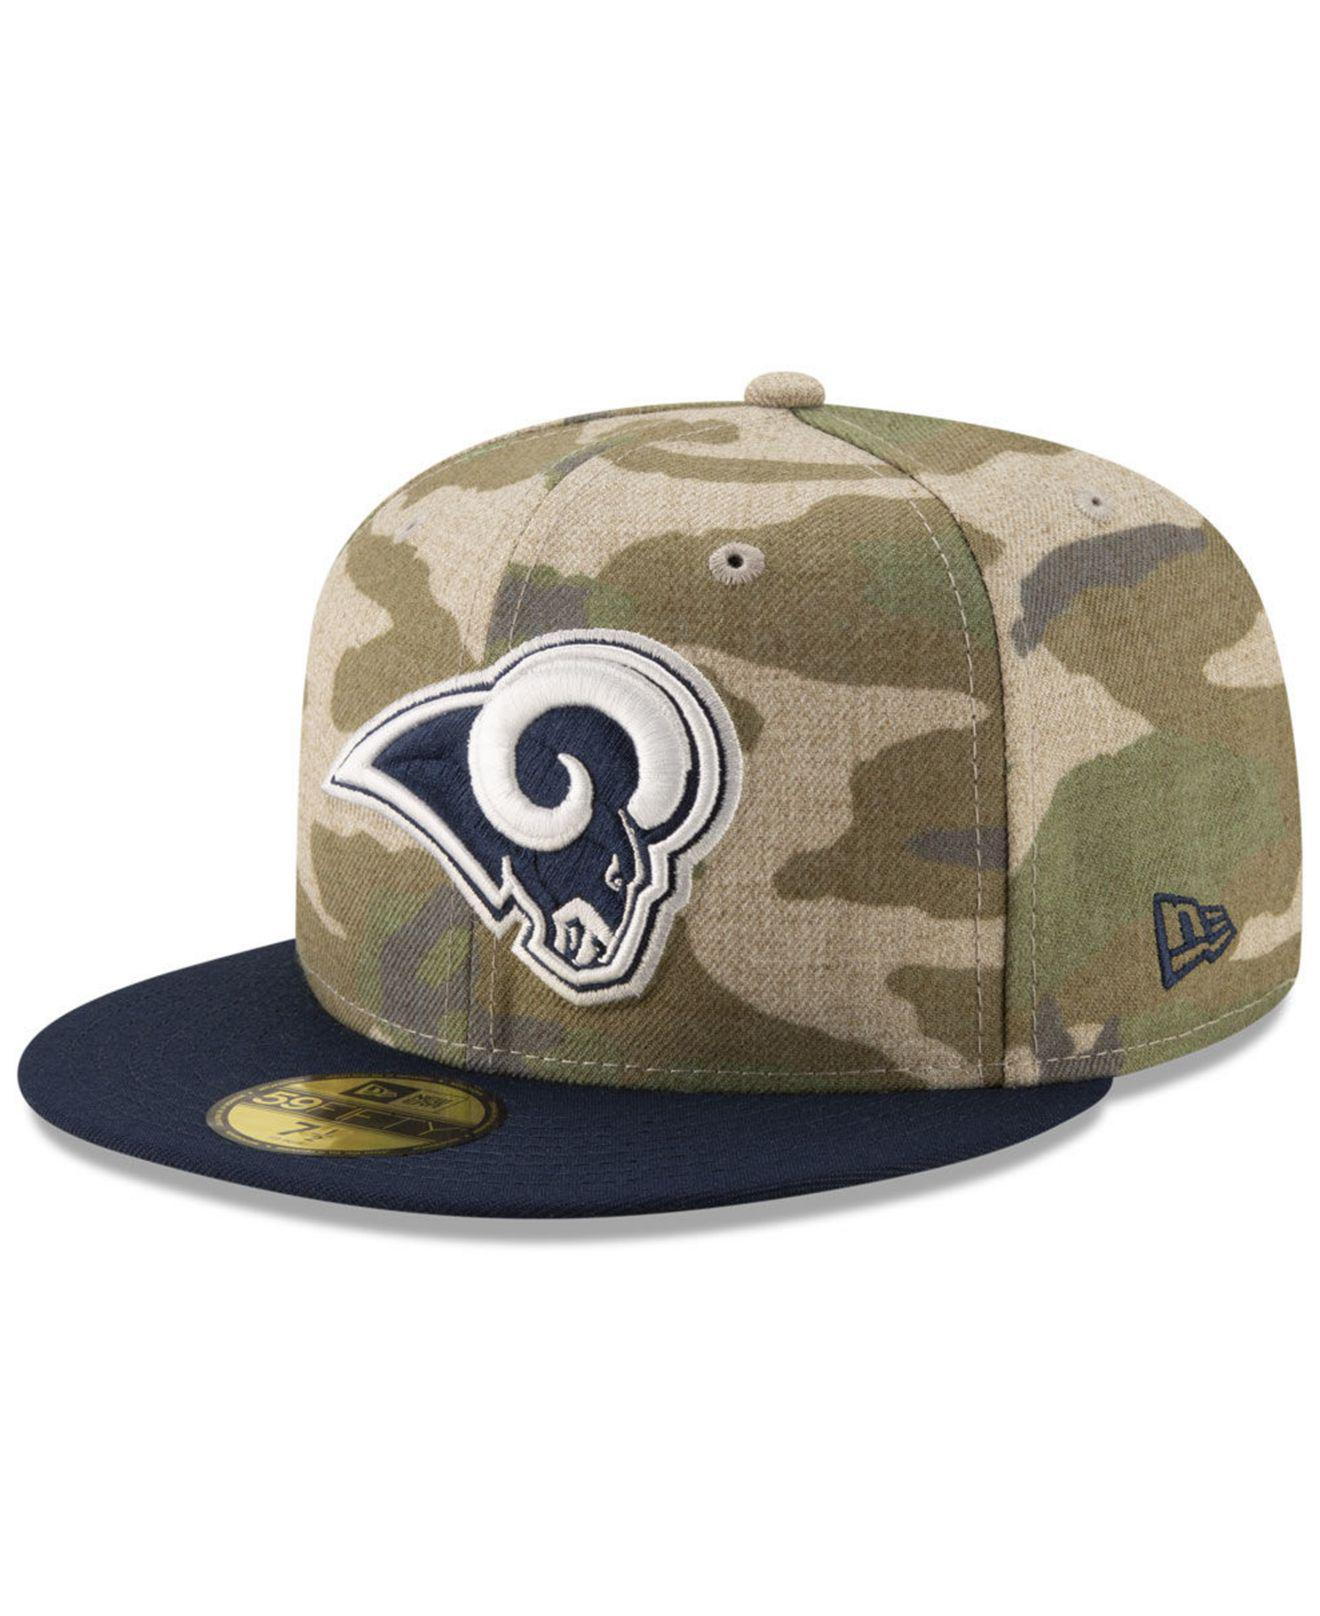 Lyst - KTZ Los Angeles Rams Vintage Camo 59fifty Fitted Cap in Green ... 227773137